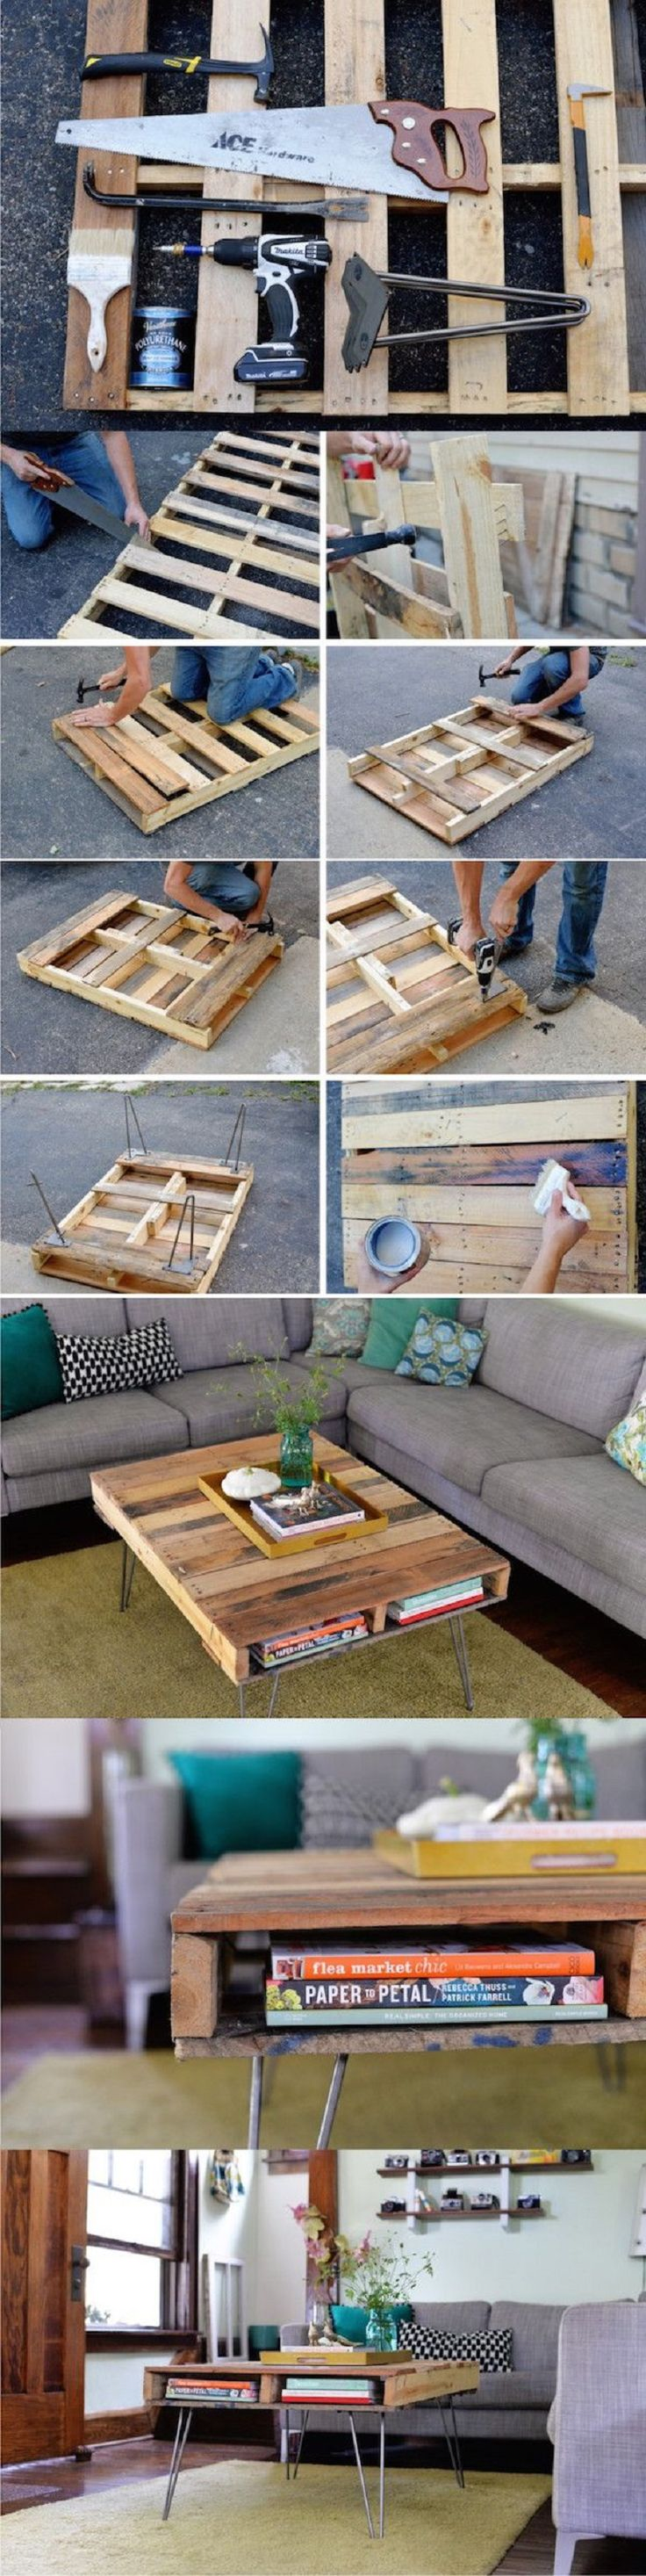 Make a new pallet coffee table for your home - 16 DIY Ways To Stay Busy And Crafty When It's Snowing   GleamItUp